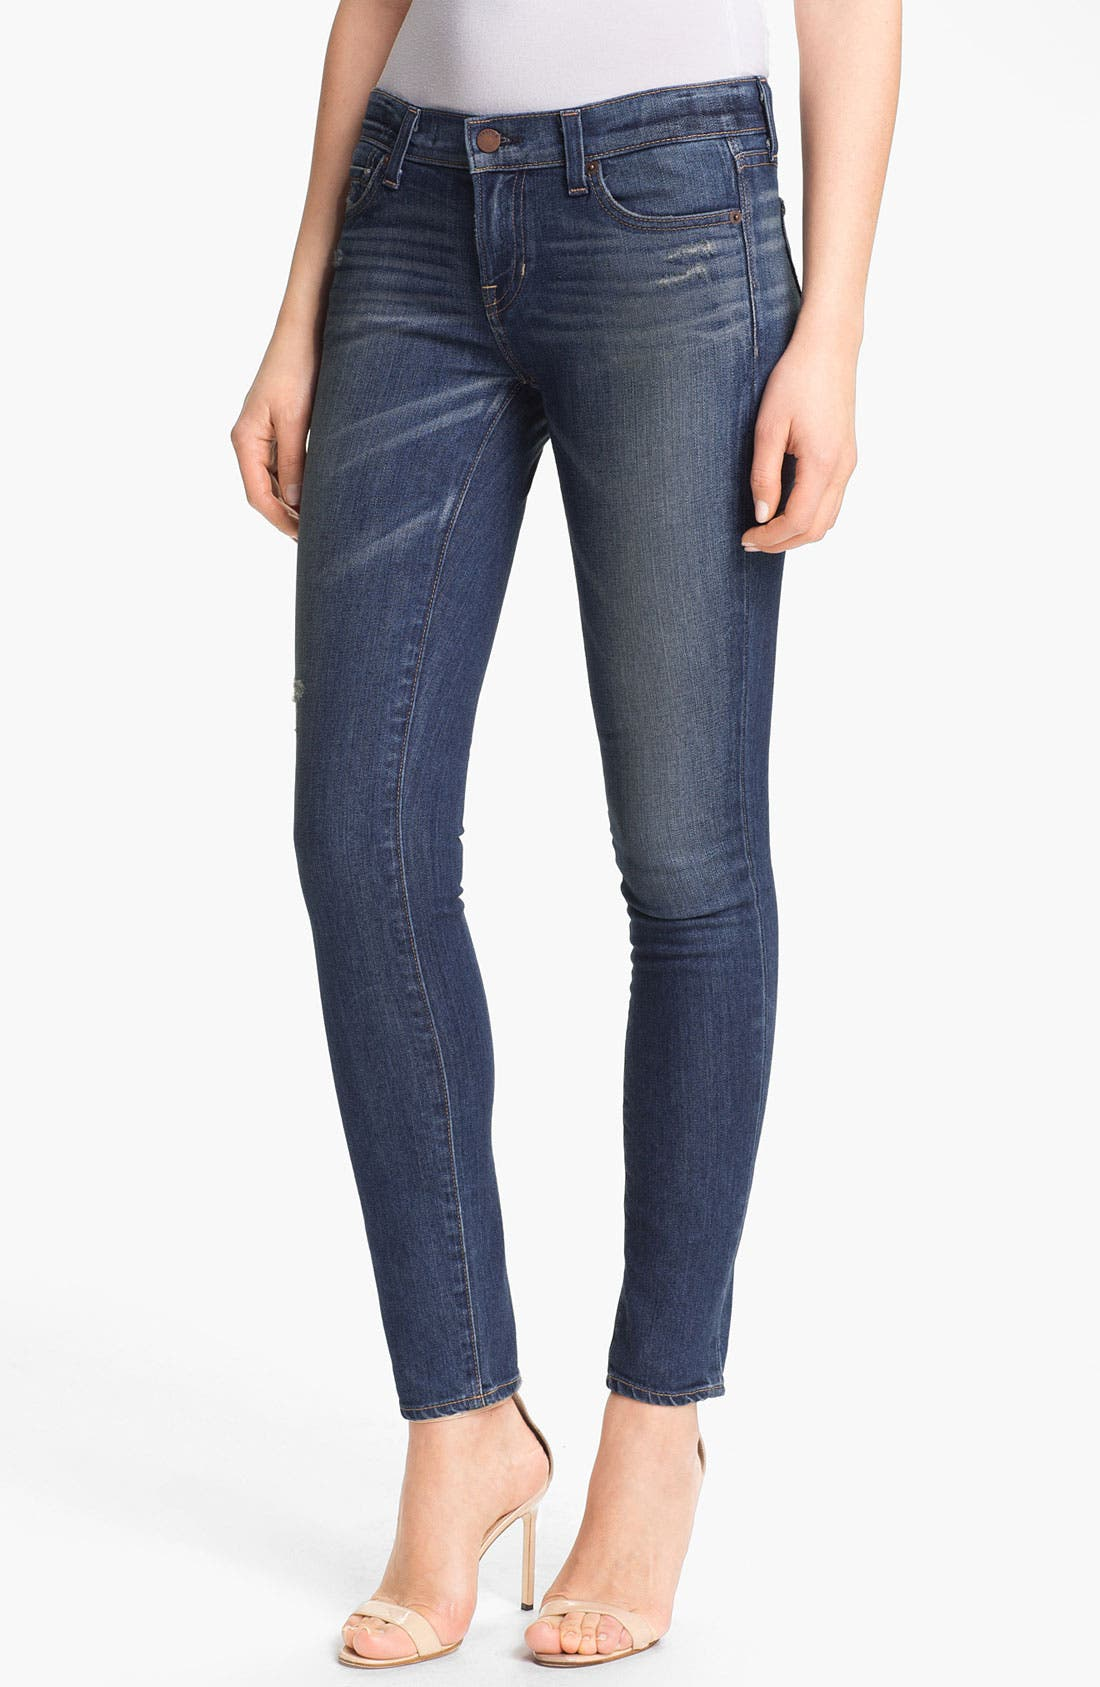 Main Image - TEXTILE Elizabeth and James 'Debbie' Skinny Jeans